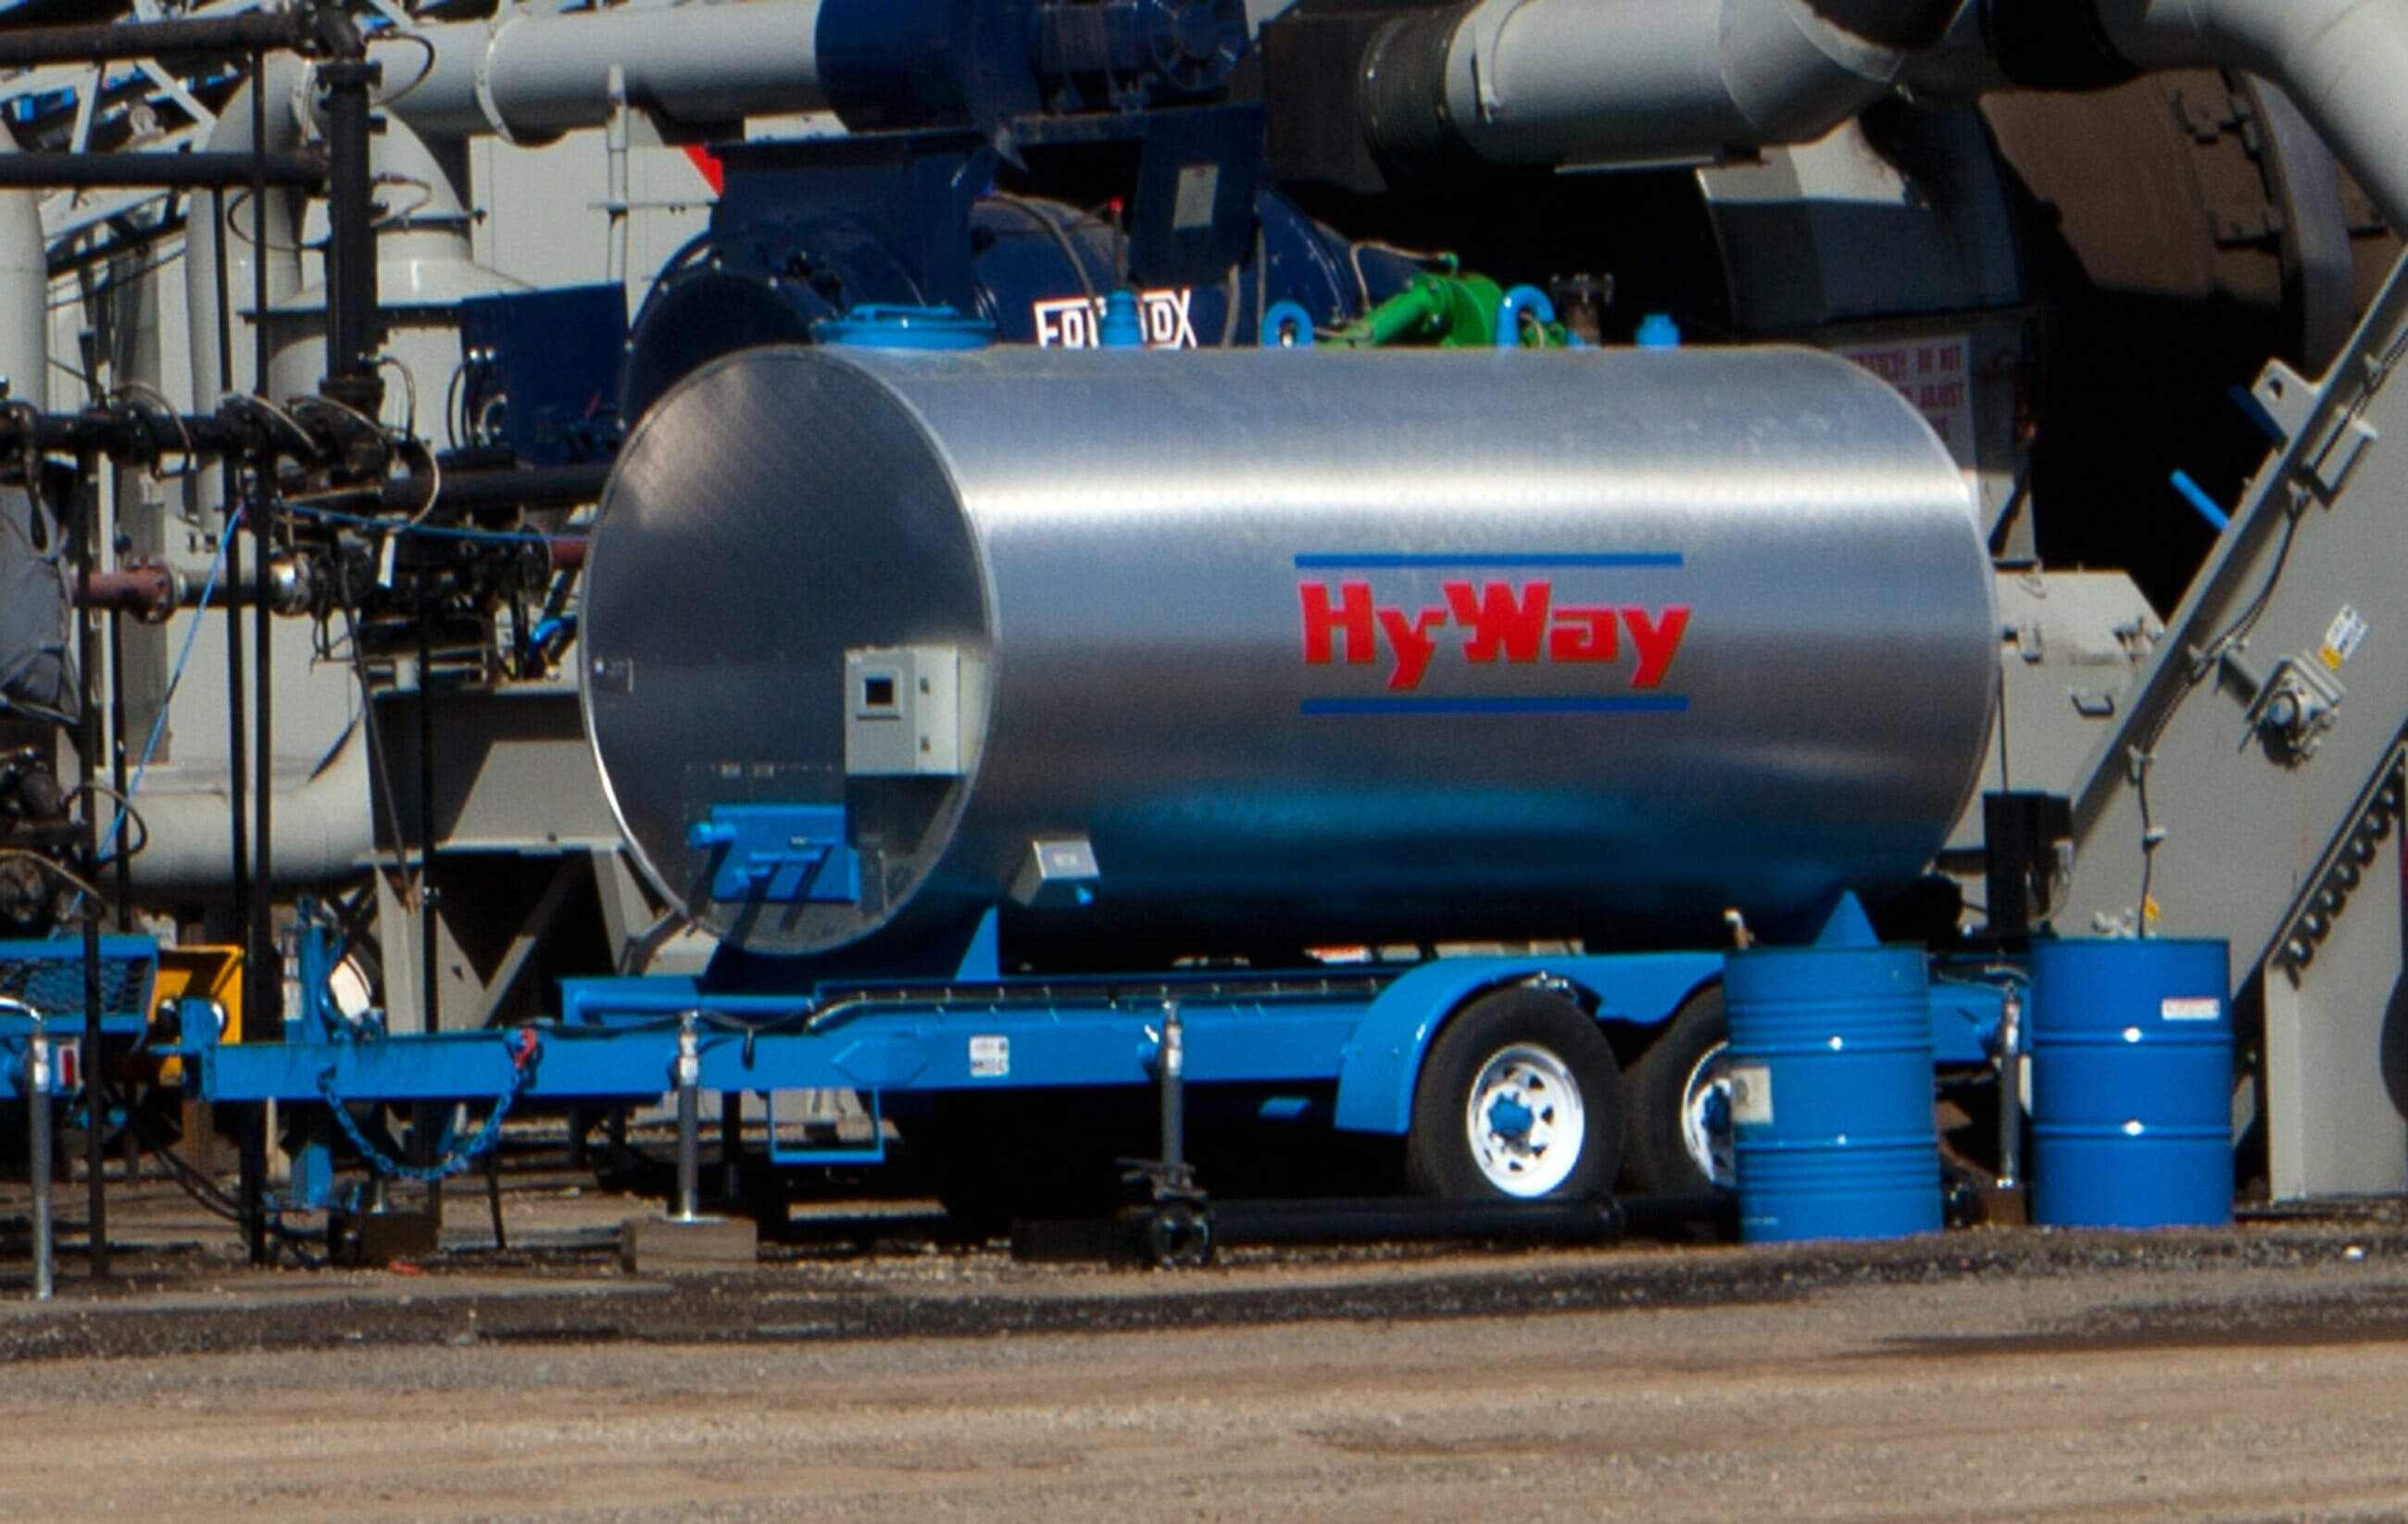 Hy Way Asphalt Storage Tanks Construction Equipment Gencor Piping Diagram Twin Oil Click To View Larger